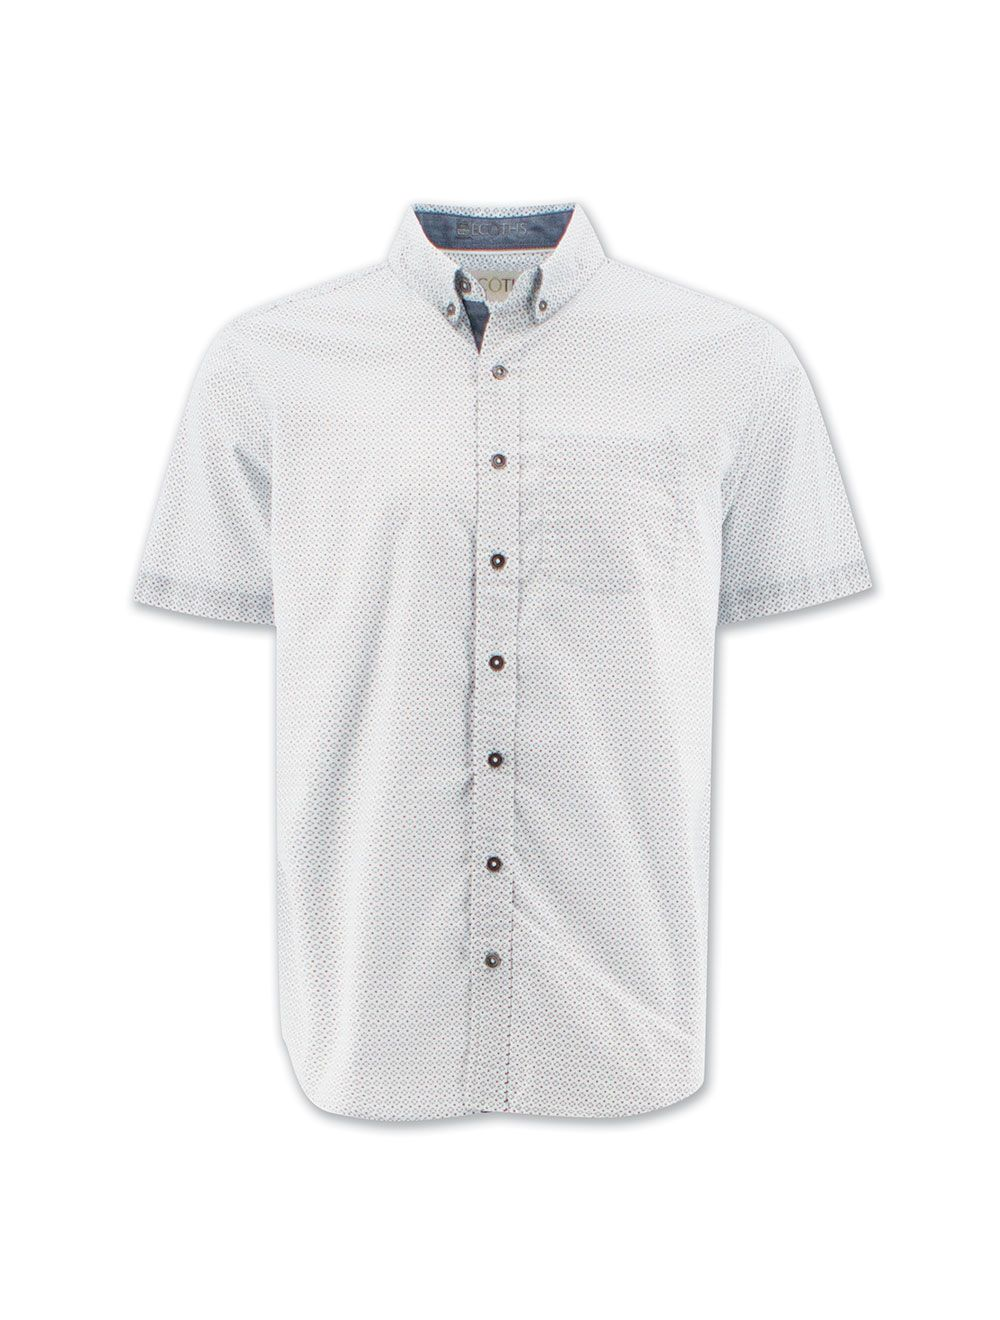 Organic cotton men's button down collared shirt with short sleeves featuring a white and grey polka-dotted pattern